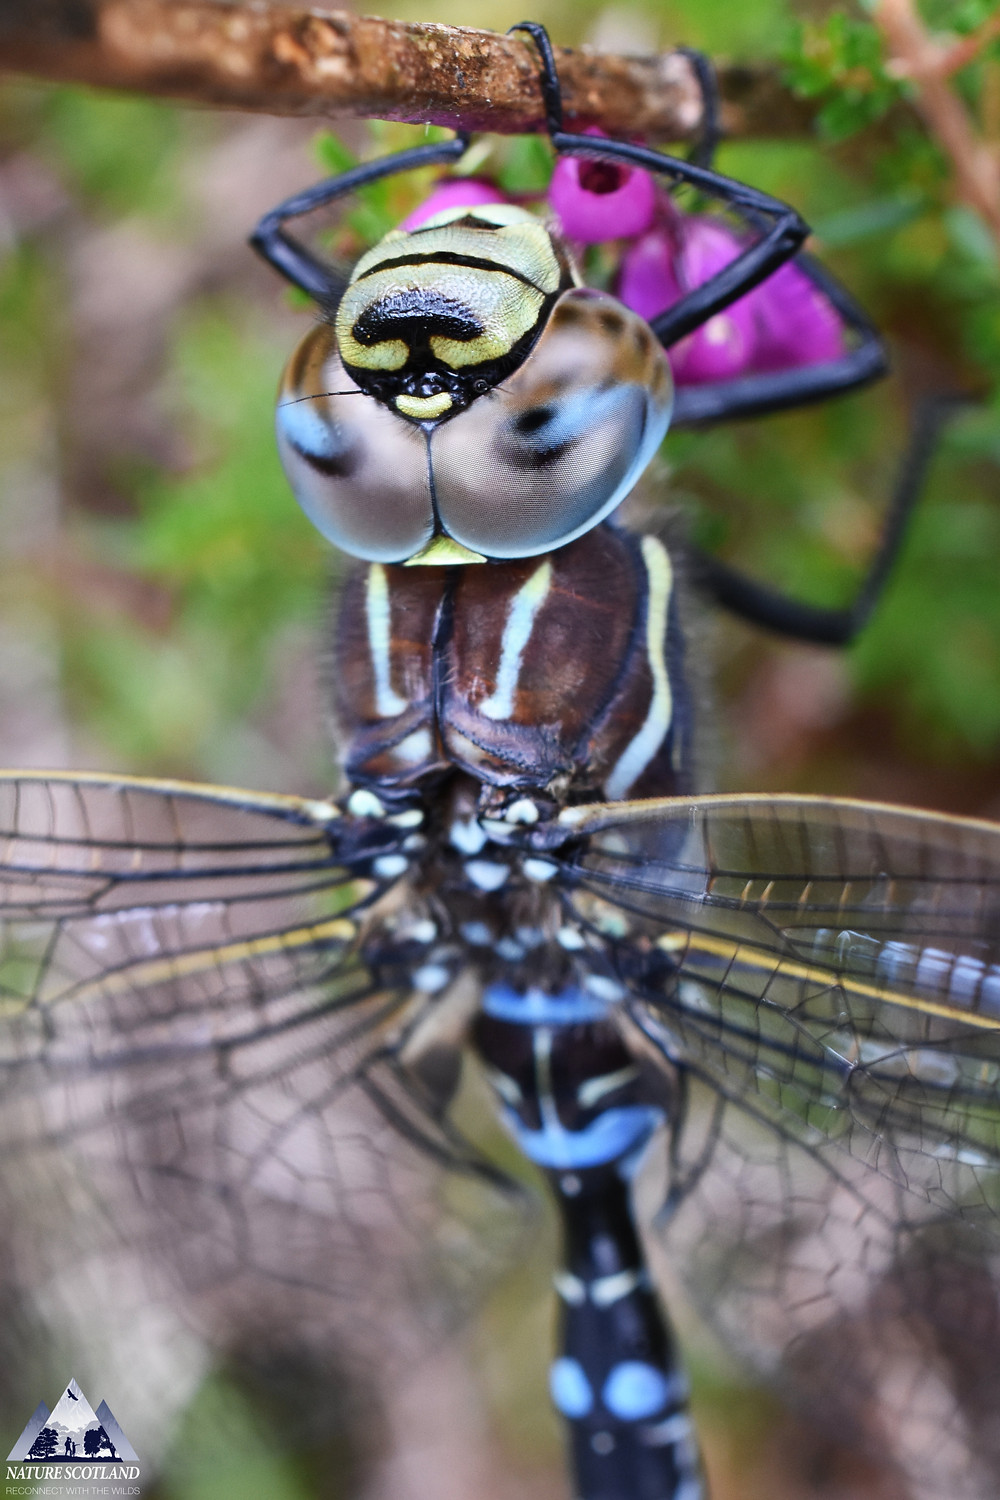 isle of mull, mull, dragonfly, nature scotland, common hawker,